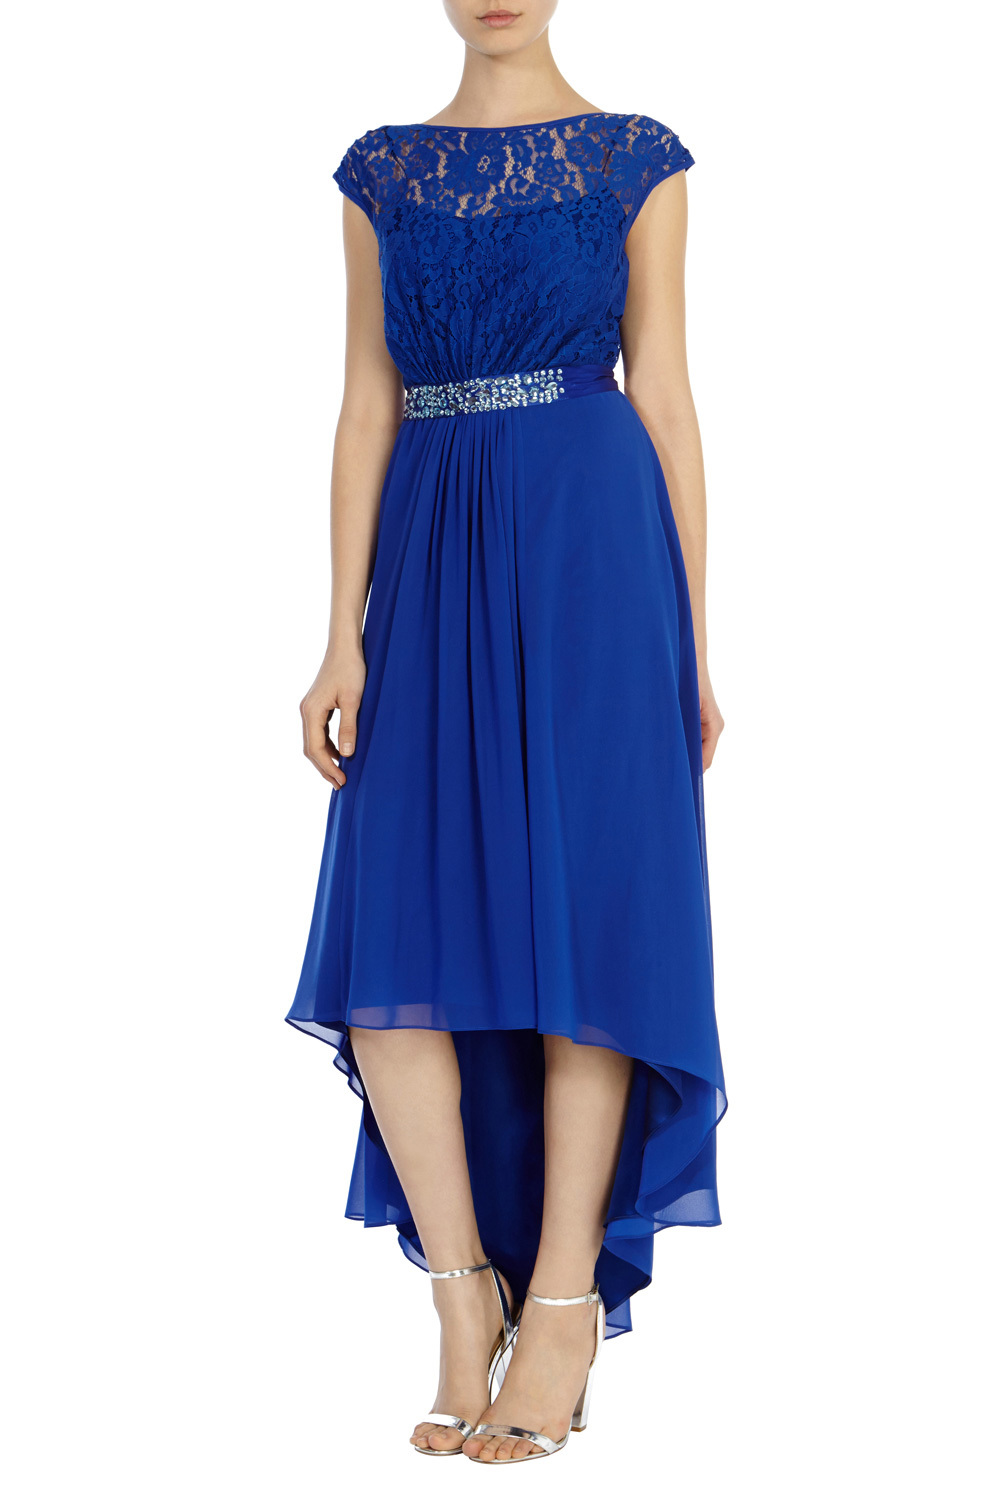 Lori Lee Lace Hi Low Dress - length: below the knee; neckline: slash/boat neckline; sleeve style: capped; pattern: plain; predominant colour: royal blue; fit: soft a-line; style: asymmetric (hem); fibres: polyester/polyamide - 100%; occasions: occasion; back detail: keyhole/peephole detail at back; sleeve length: short sleeve; texture group: sheer fabrics/chiffon/organza etc.; pattern type: fabric; embellishment: lace; secondary colour: clear; season: a/w 2015; wardrobe: event; embellishment location: waist